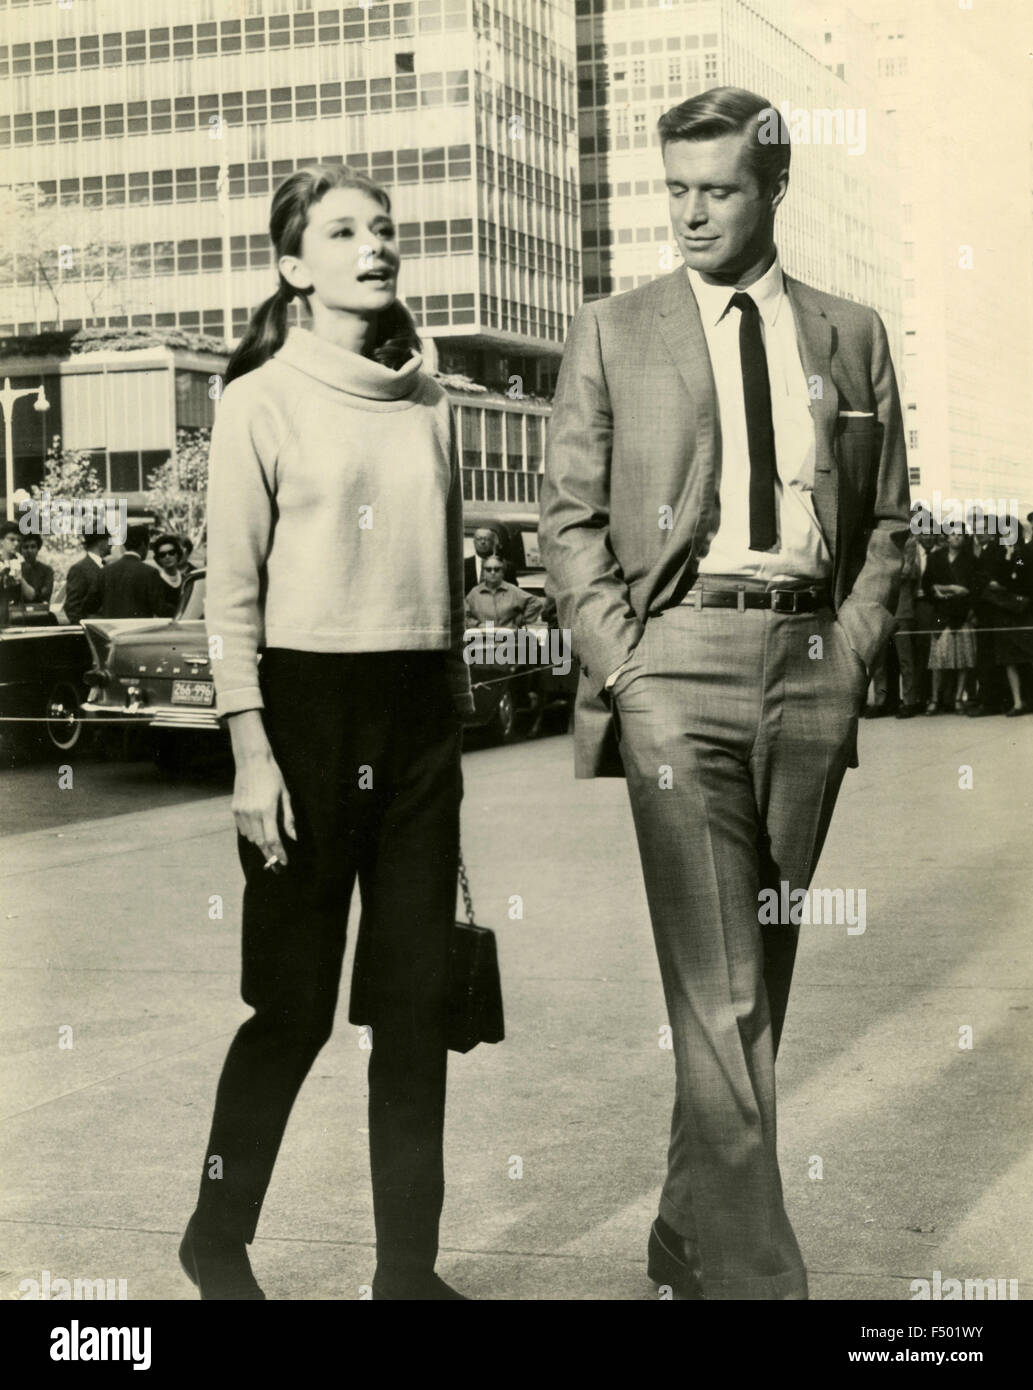 The actors Audrey Hepburn and George Peppard in a scene from the film 'Breakfast at Tiffany's', USA - Stock Image